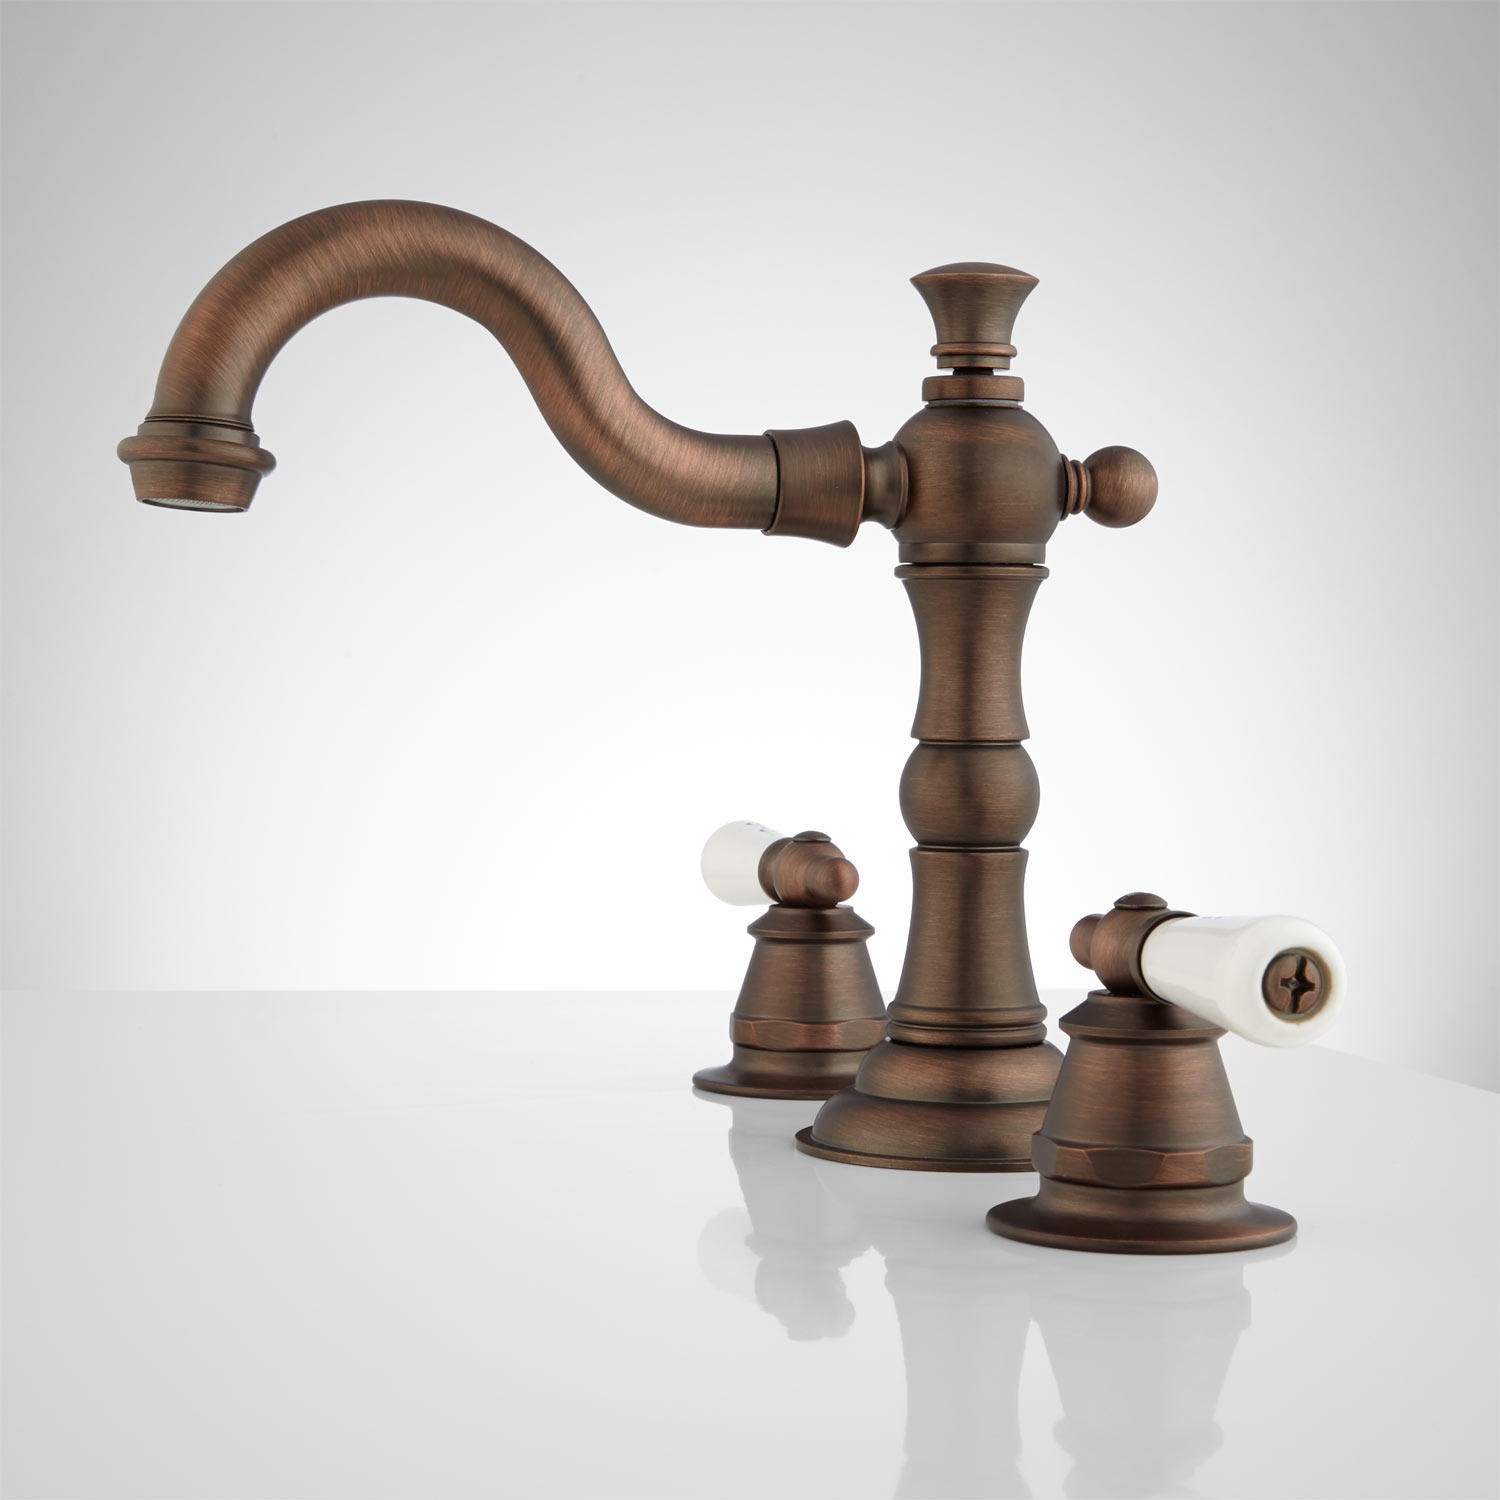 Inspirational Roseanna Widespread Bathroom Faucet - Small Porcelain Lever Handles for Elegant Bathroom Faucet Oil Rubbed Bronze